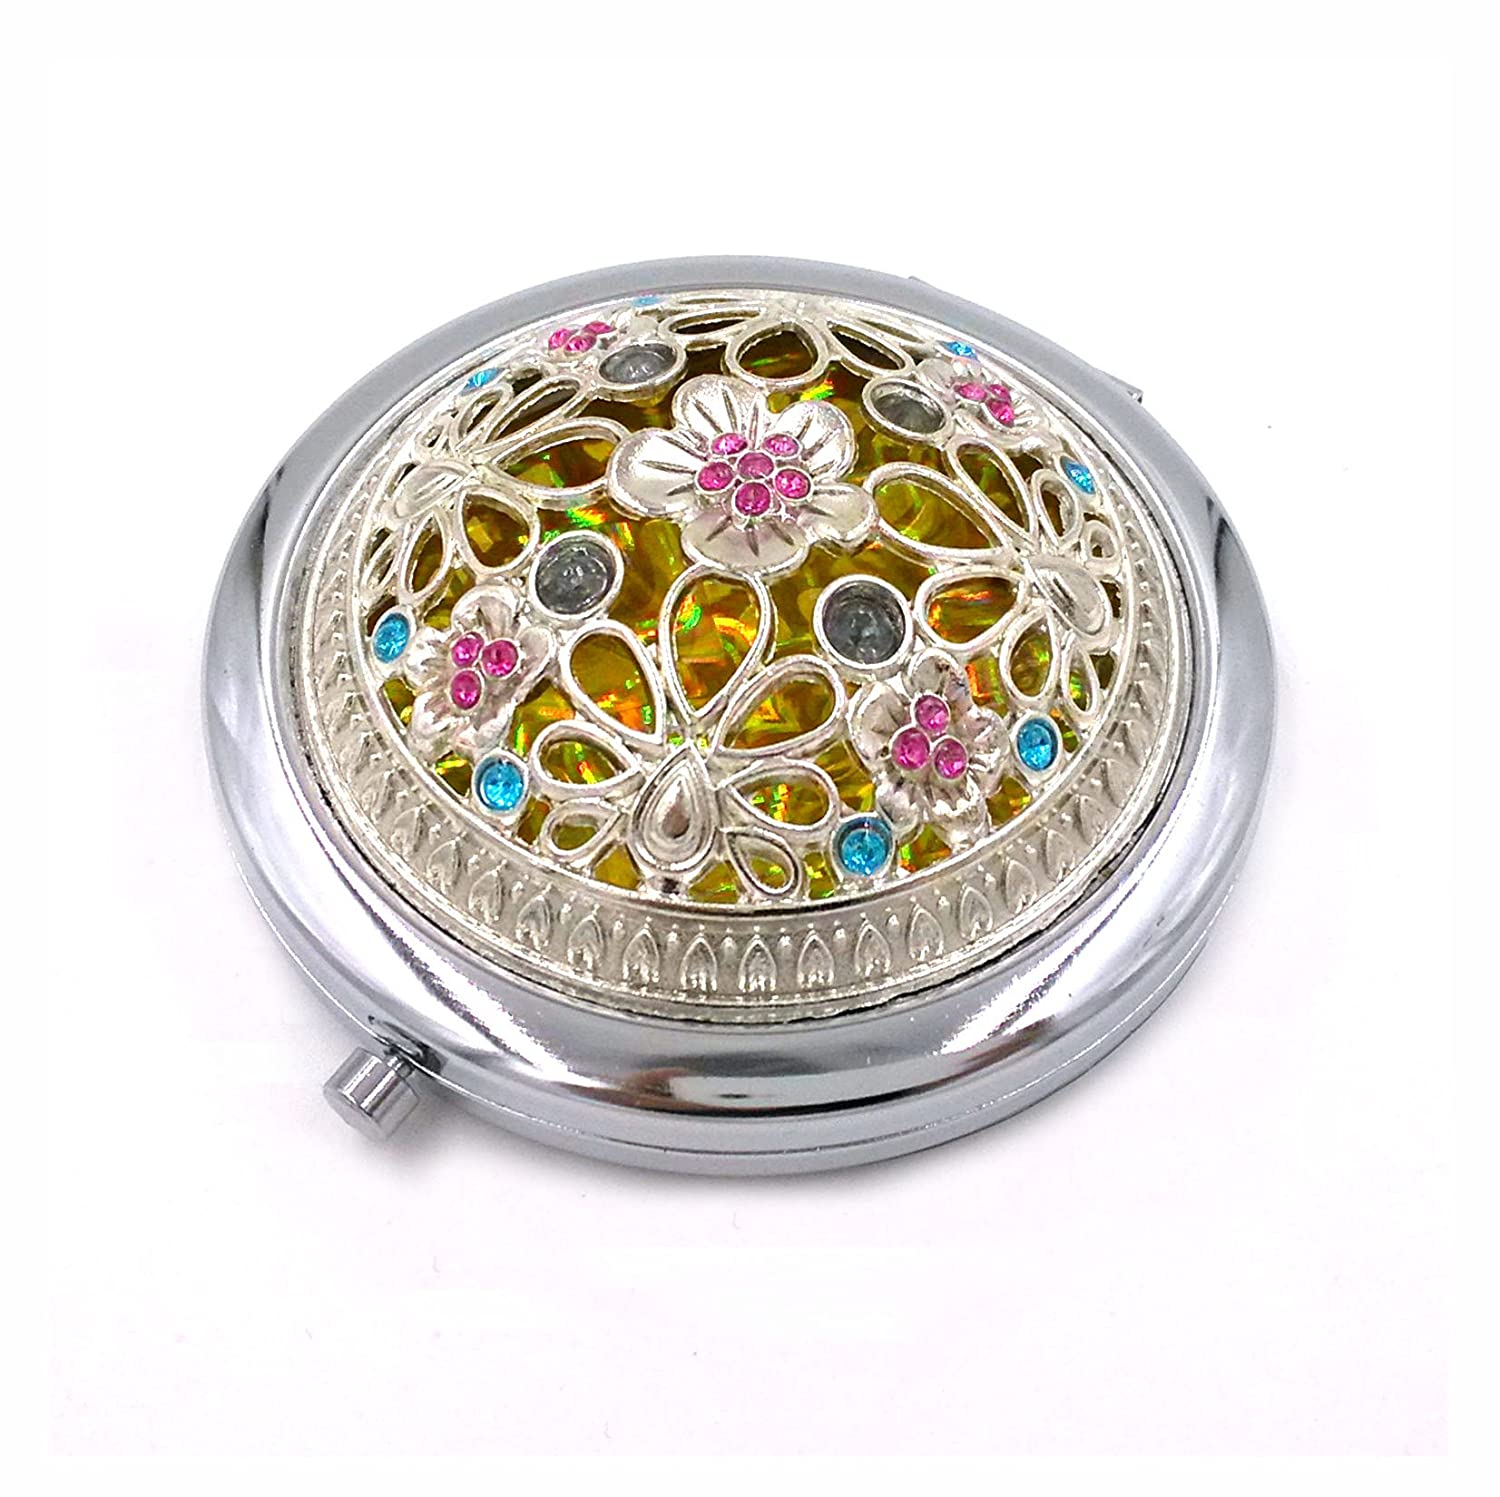 Duttek Mini Round Metal Cosmetic Makeup Double Compact Purse Mirror Pocket Mirror Double-sided Folding Cosmetic Round Mirror- Assorted Mirror Back Pattern design (Silver) RH-THH8-HR48